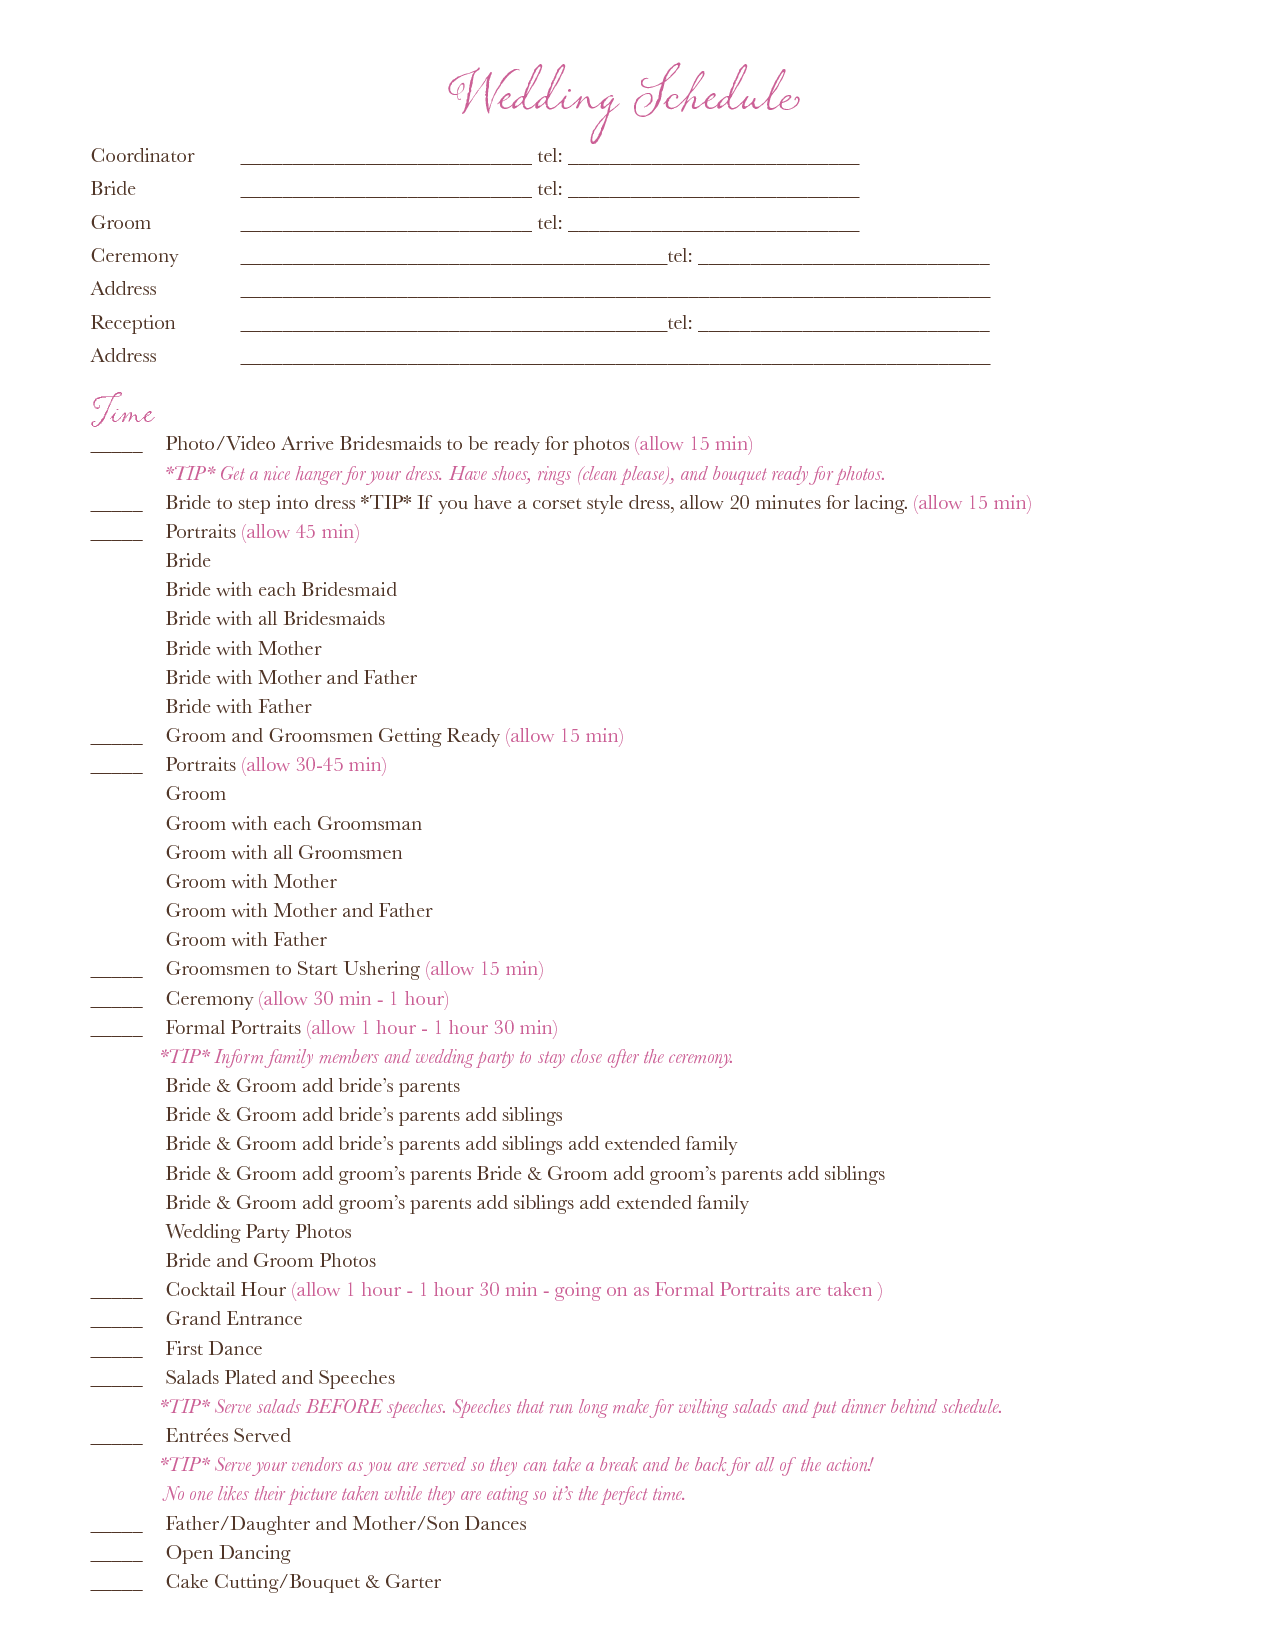 Wedding Day Schedule Templates Document Sample Shared By